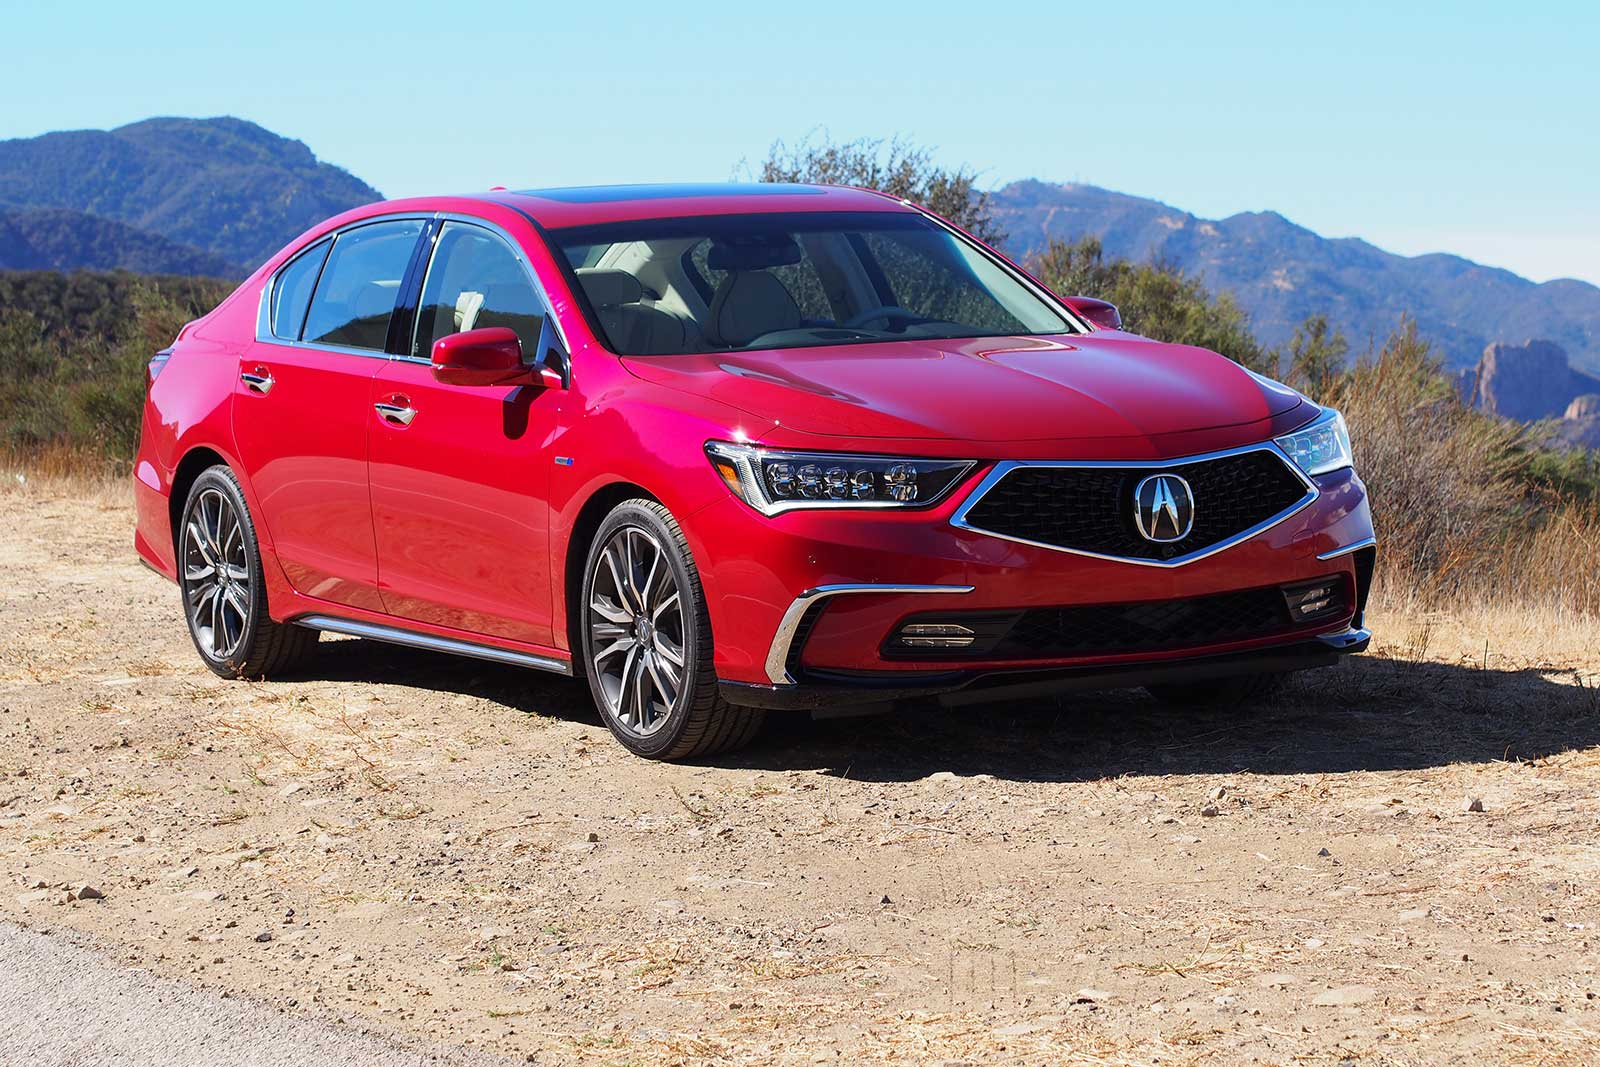 2018 acura rlx facelift revealed adopts acura 39 s new precision crafted performance design. Black Bedroom Furniture Sets. Home Design Ideas